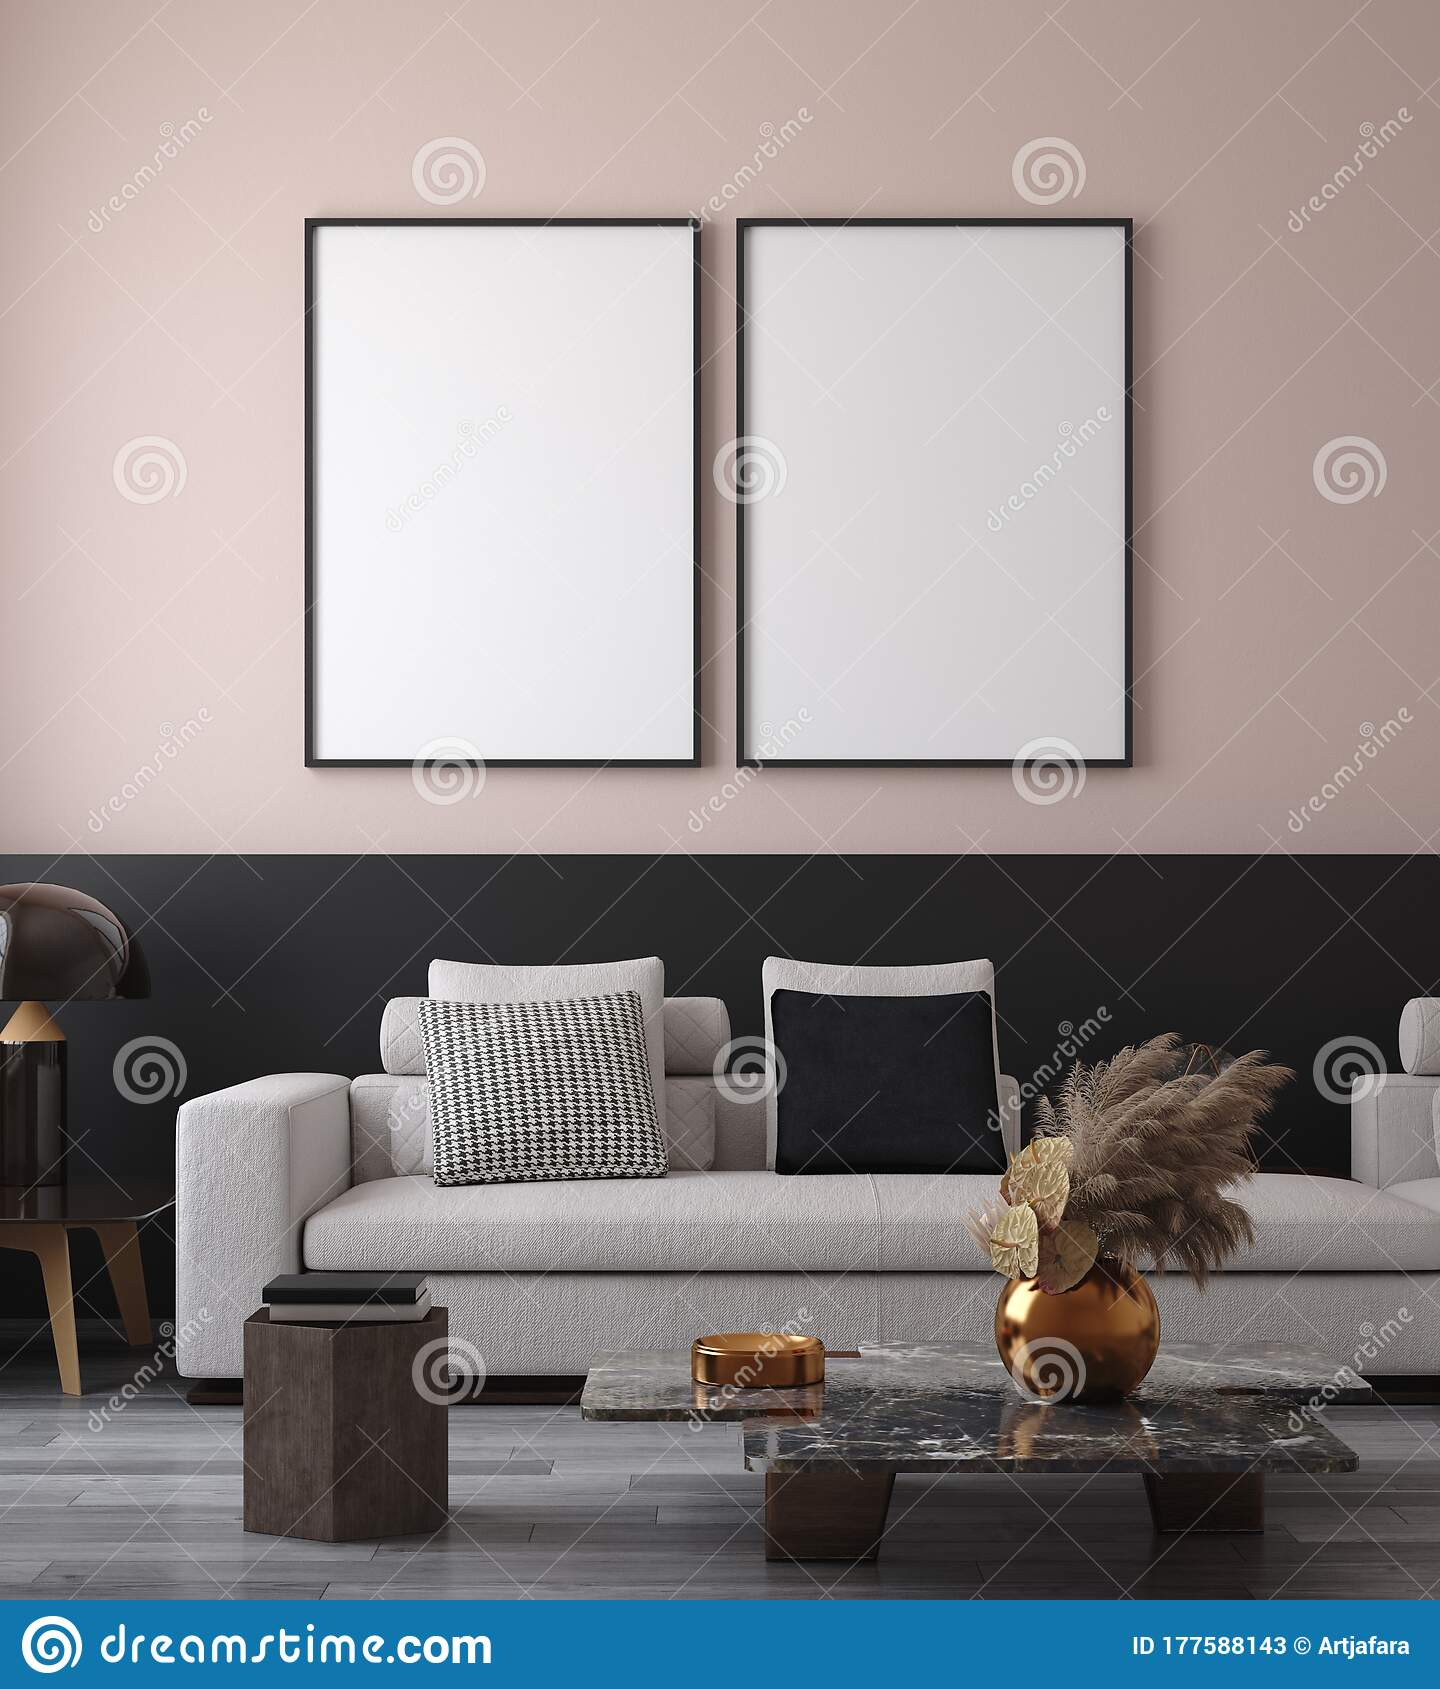 interior design mockup free download windows 10